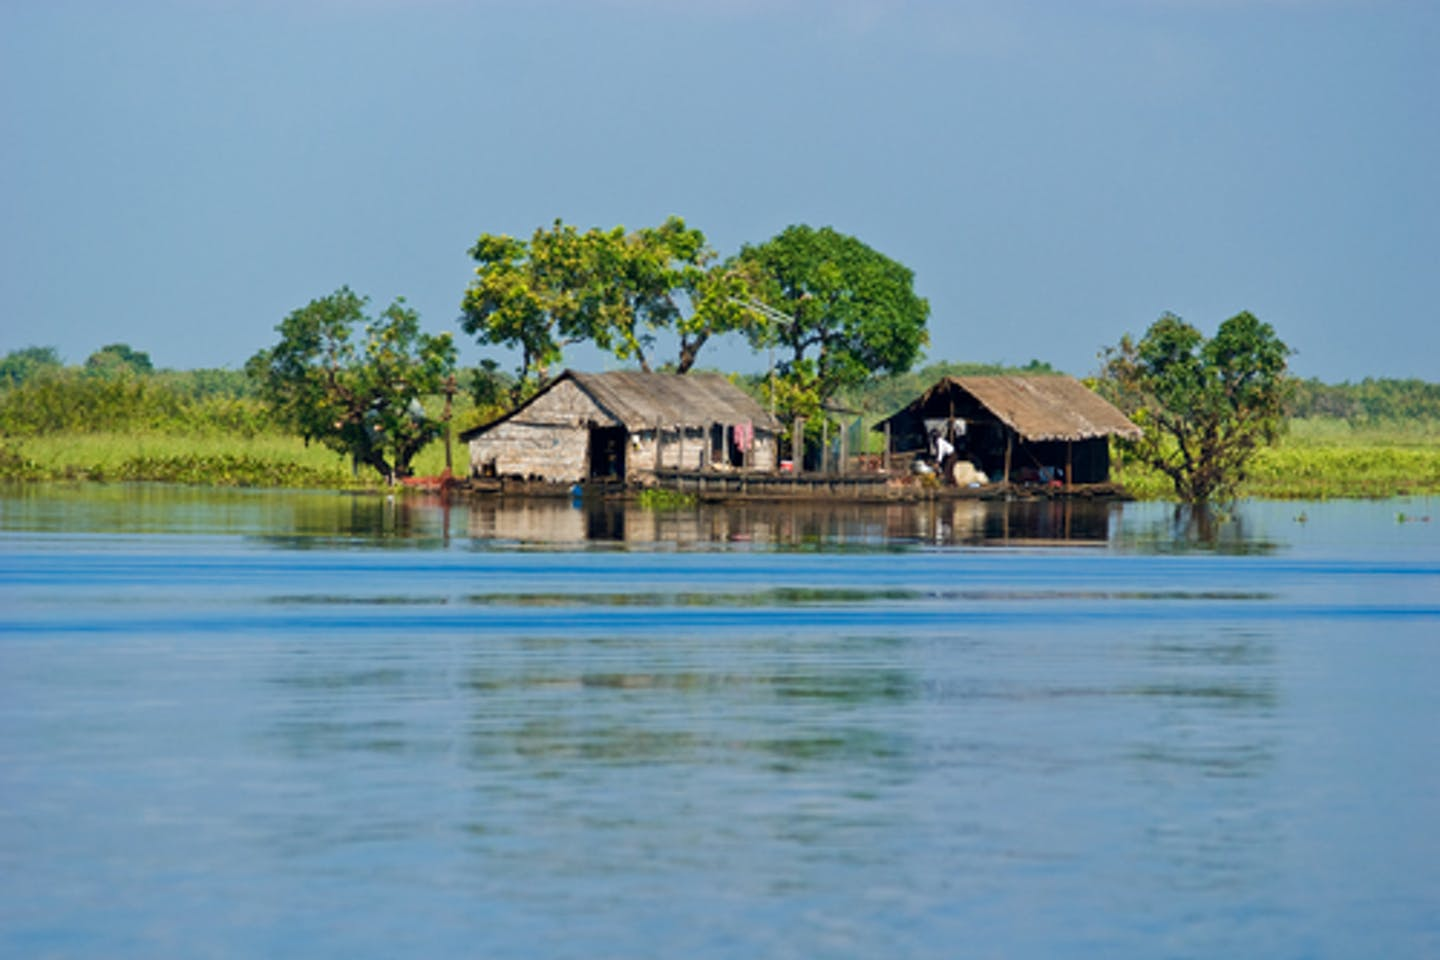 Mekong River food security